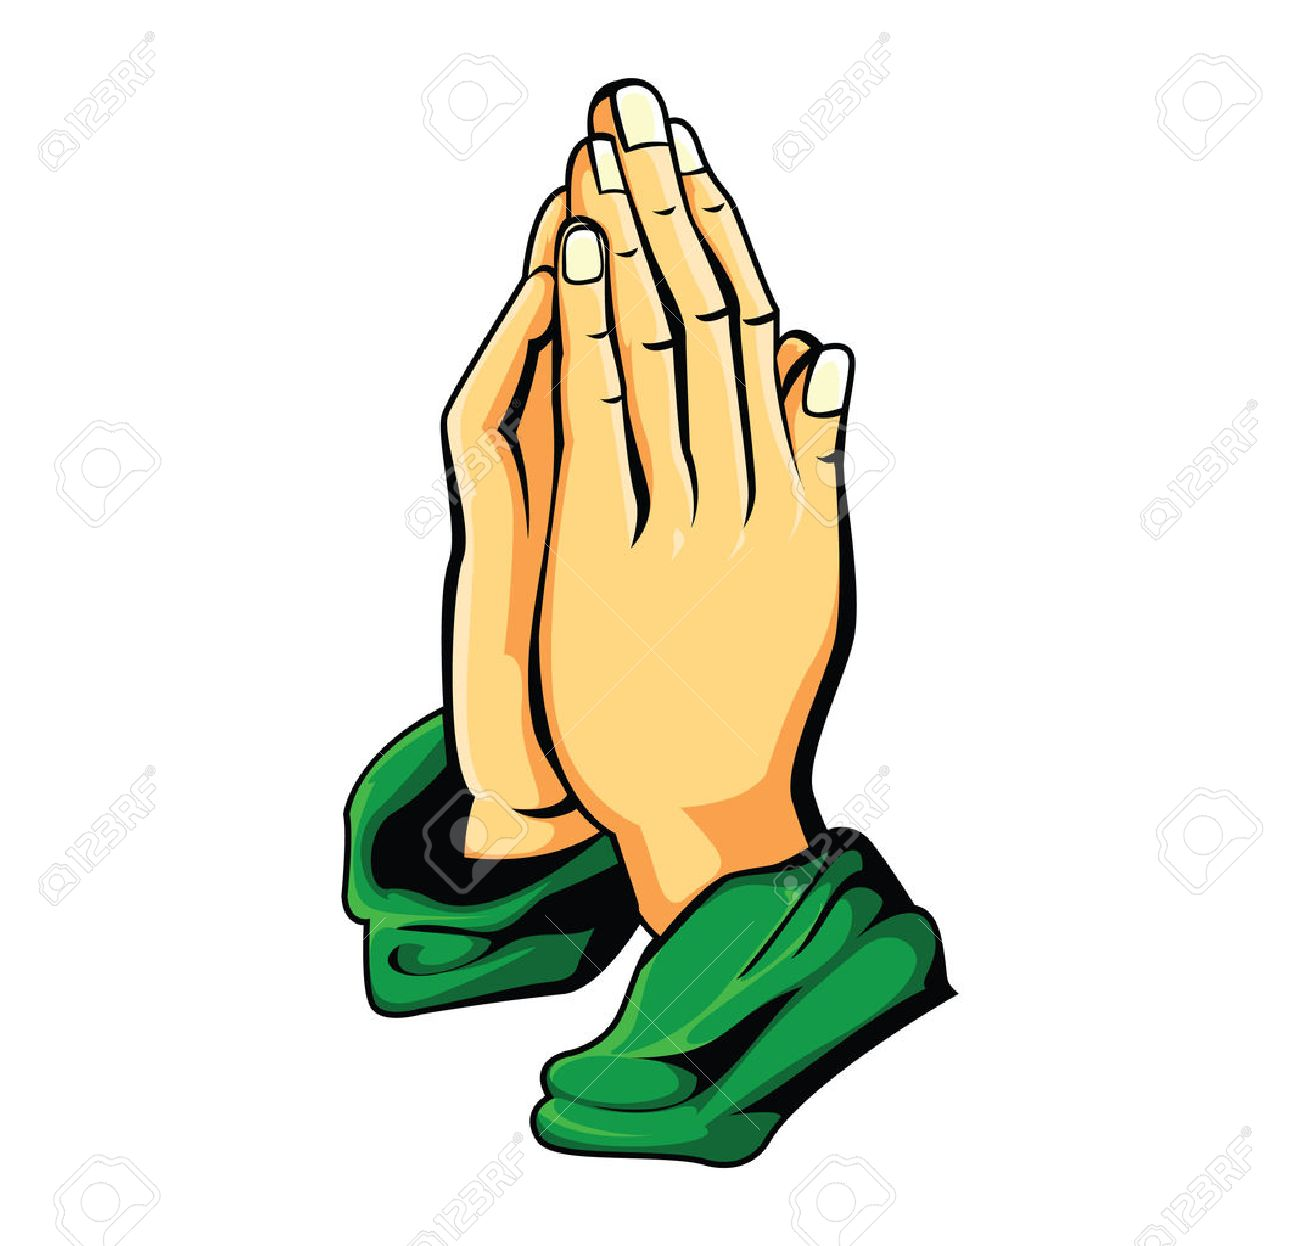 Praying Hand Image